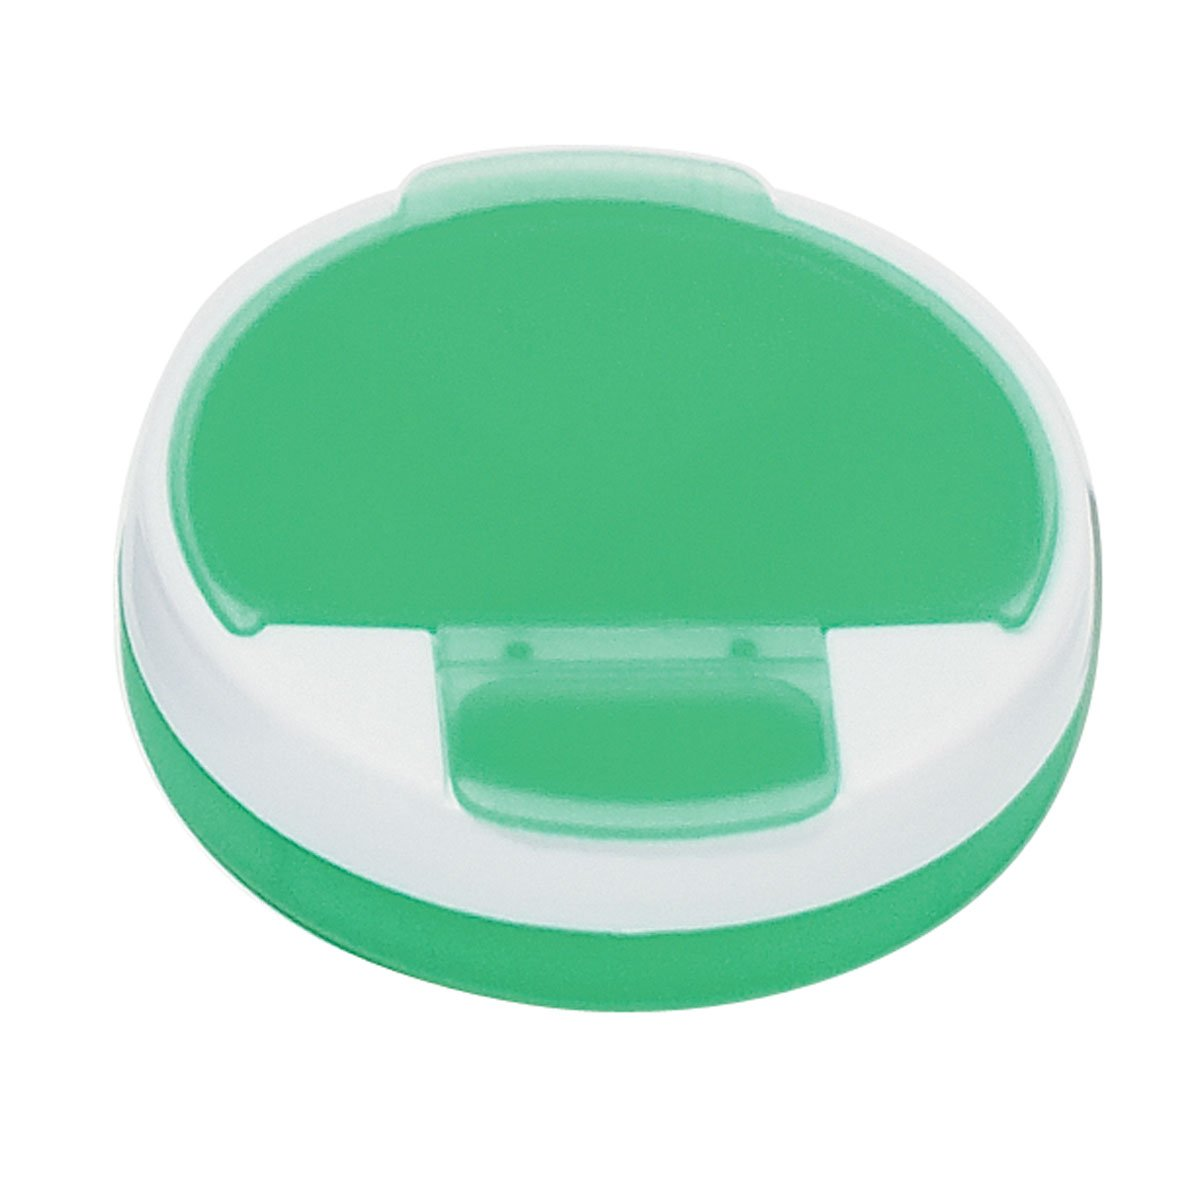 Round Pill Holder - 250 Quantity - PROMOTIONAL PRODUCT / BULK / BRANDED with YOUR LOGO / CUSTOMIZED - Kineticpromos #7540 (Green) by Kinetic